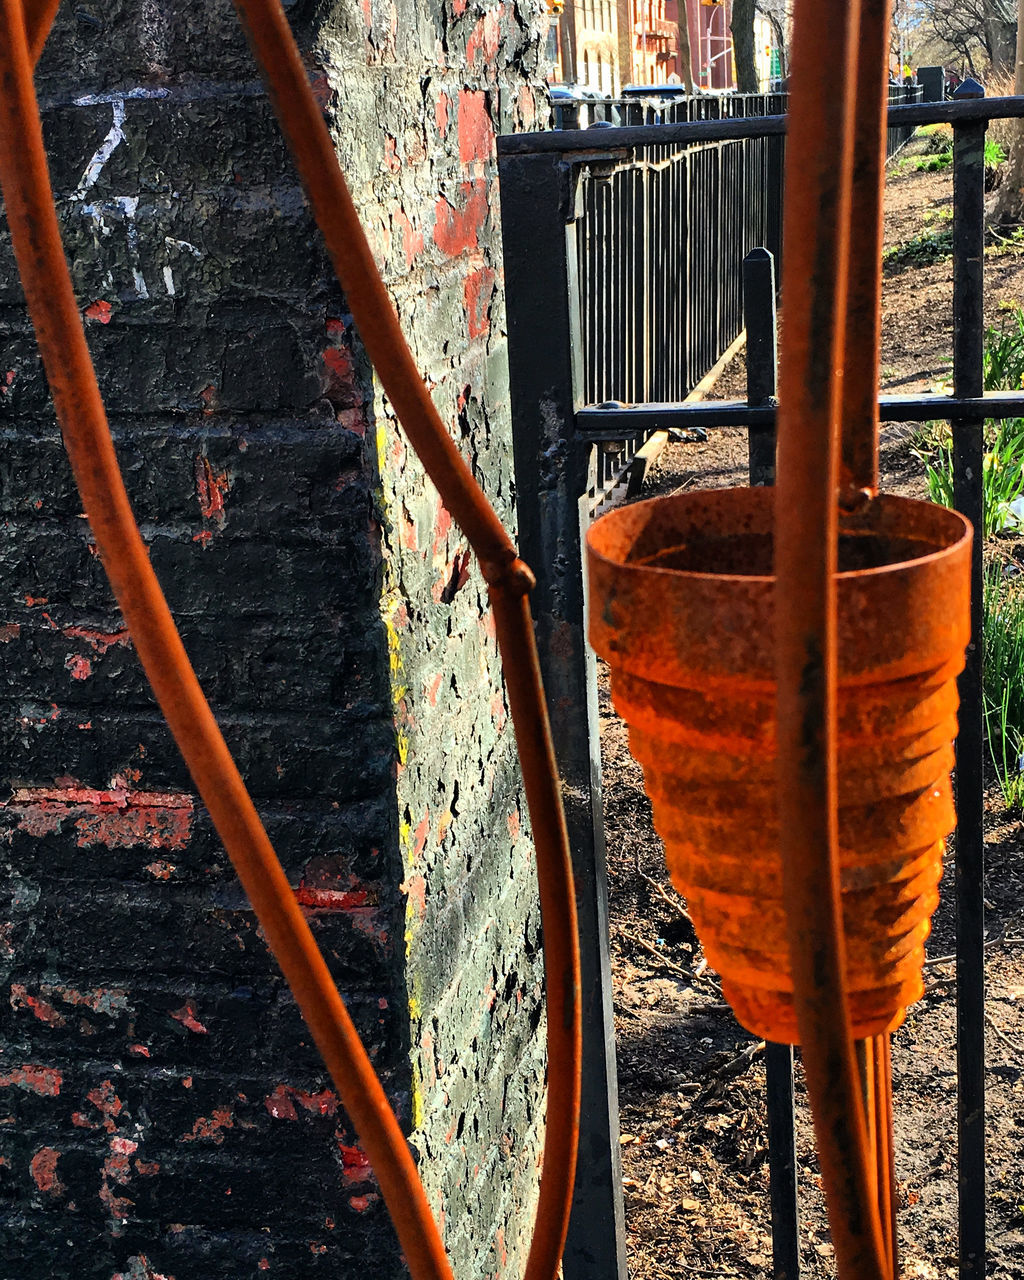 no people, metal, day, nature, orange color, rusty, outdoors, railing, architecture, close-up, plant, built structure, sunlight, wall - building feature, wood - material, focus on foreground, old, weathered, gardening equipment, front or back yard, well